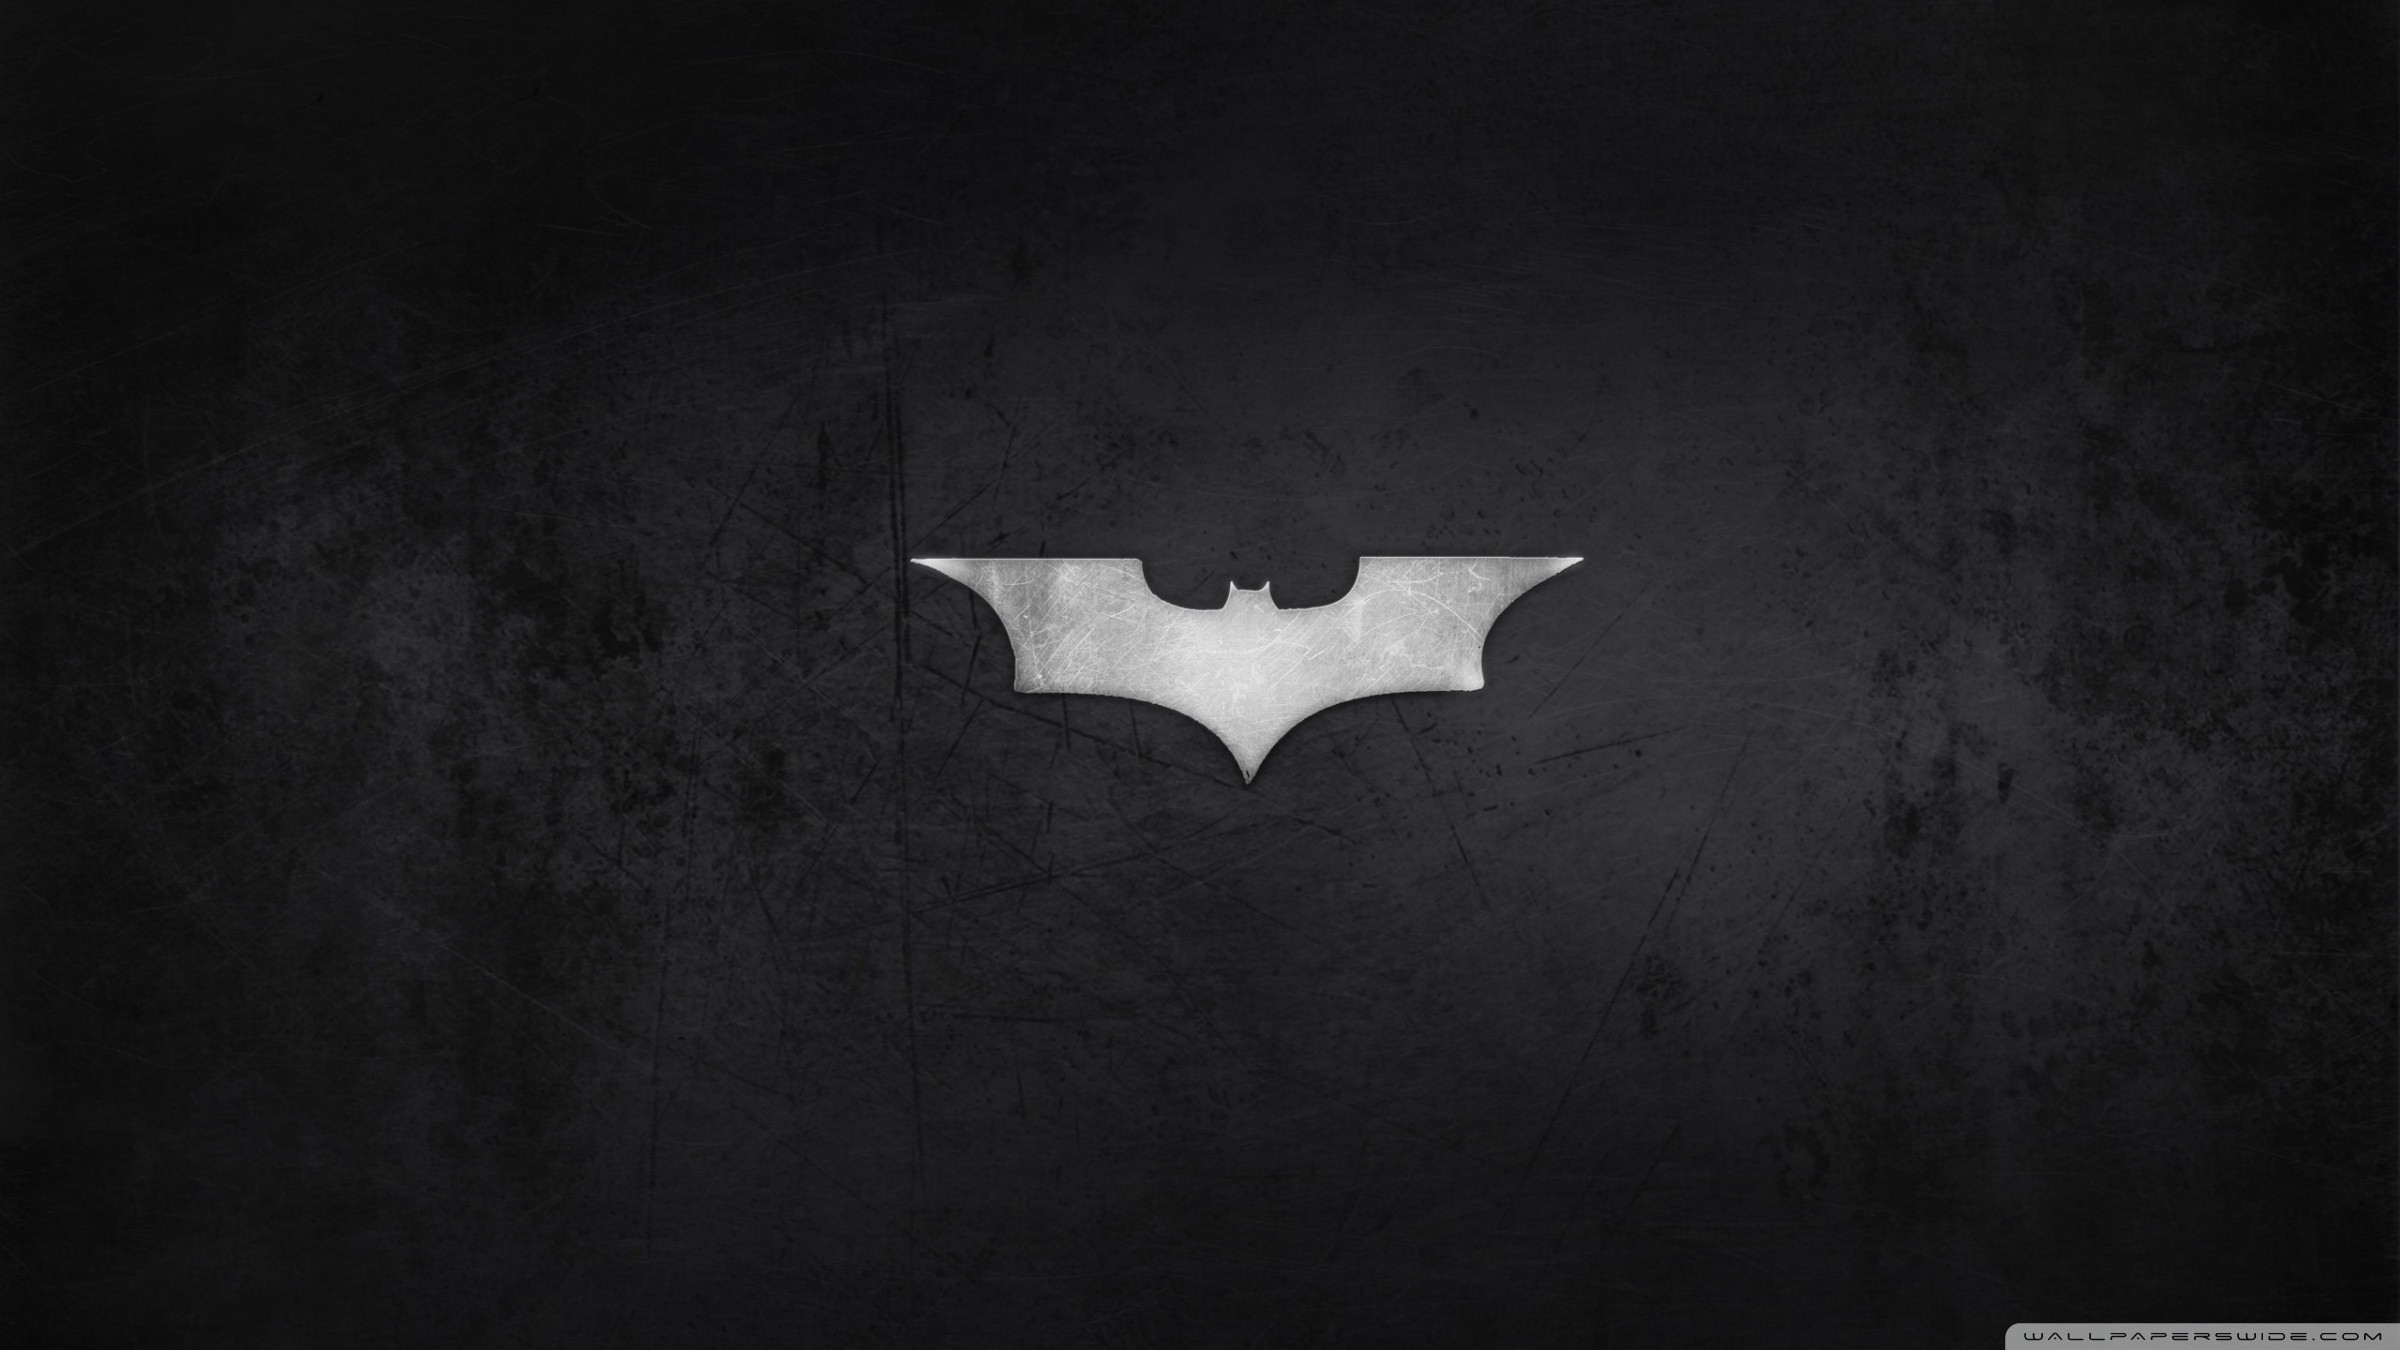 batman logo wallpaper hd (74+ images)